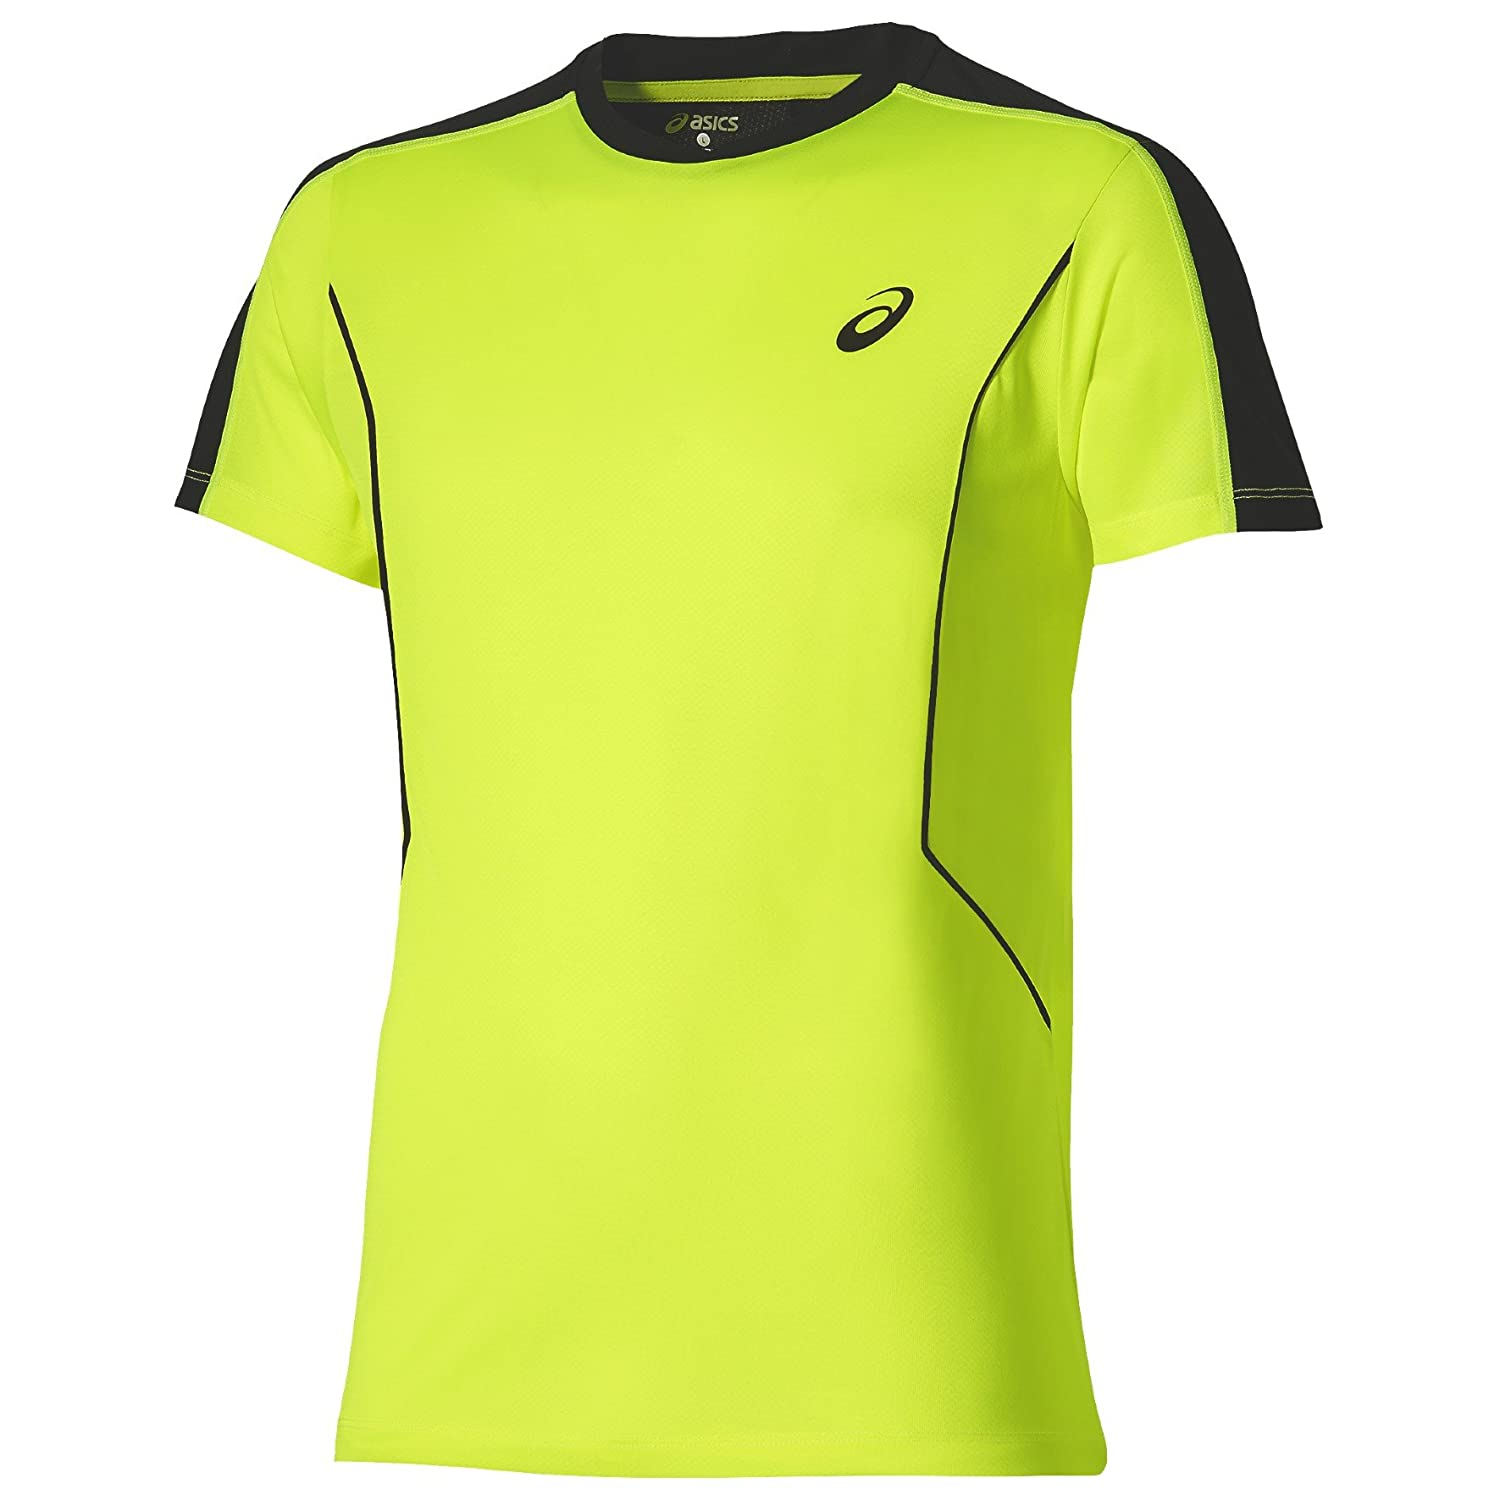 ASICS - Padel Top SS, Color Safety Yellow, Talla S: Amazon ...